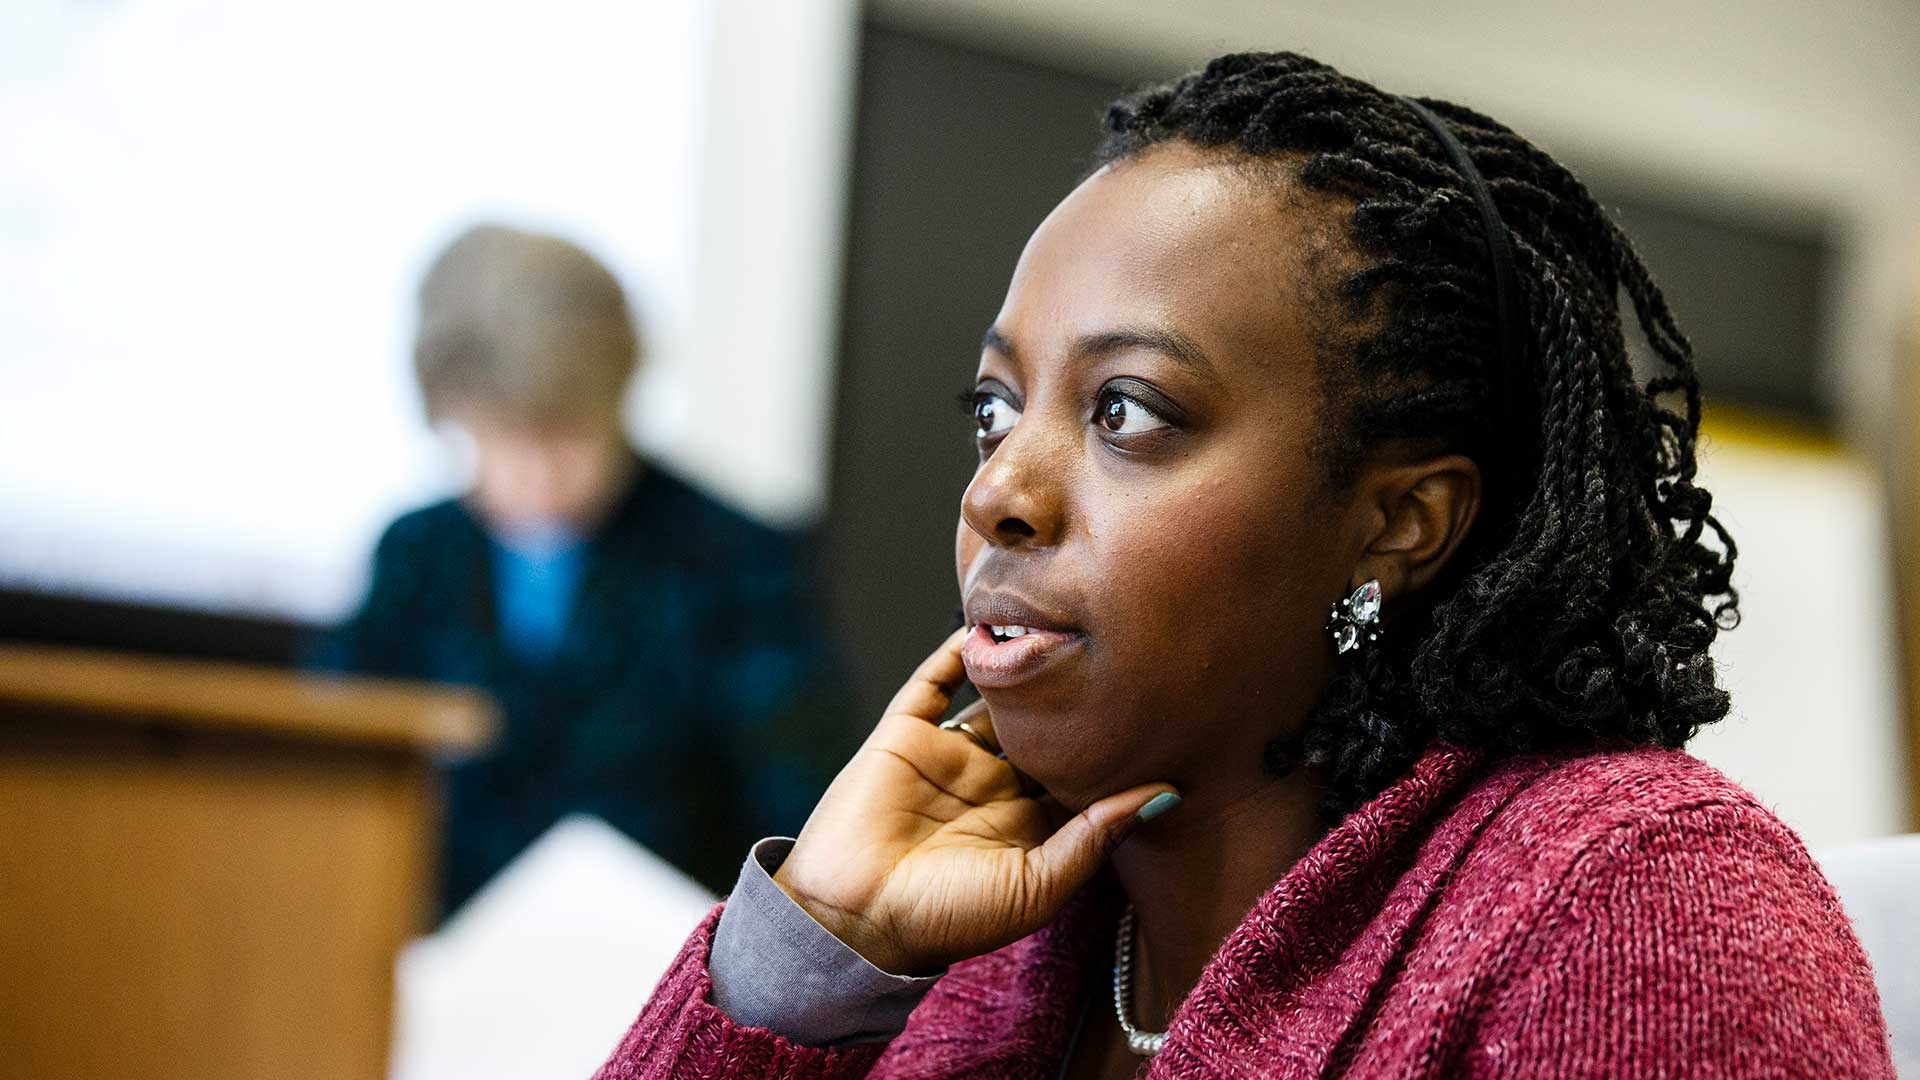 A student participates in a discussion during a class.